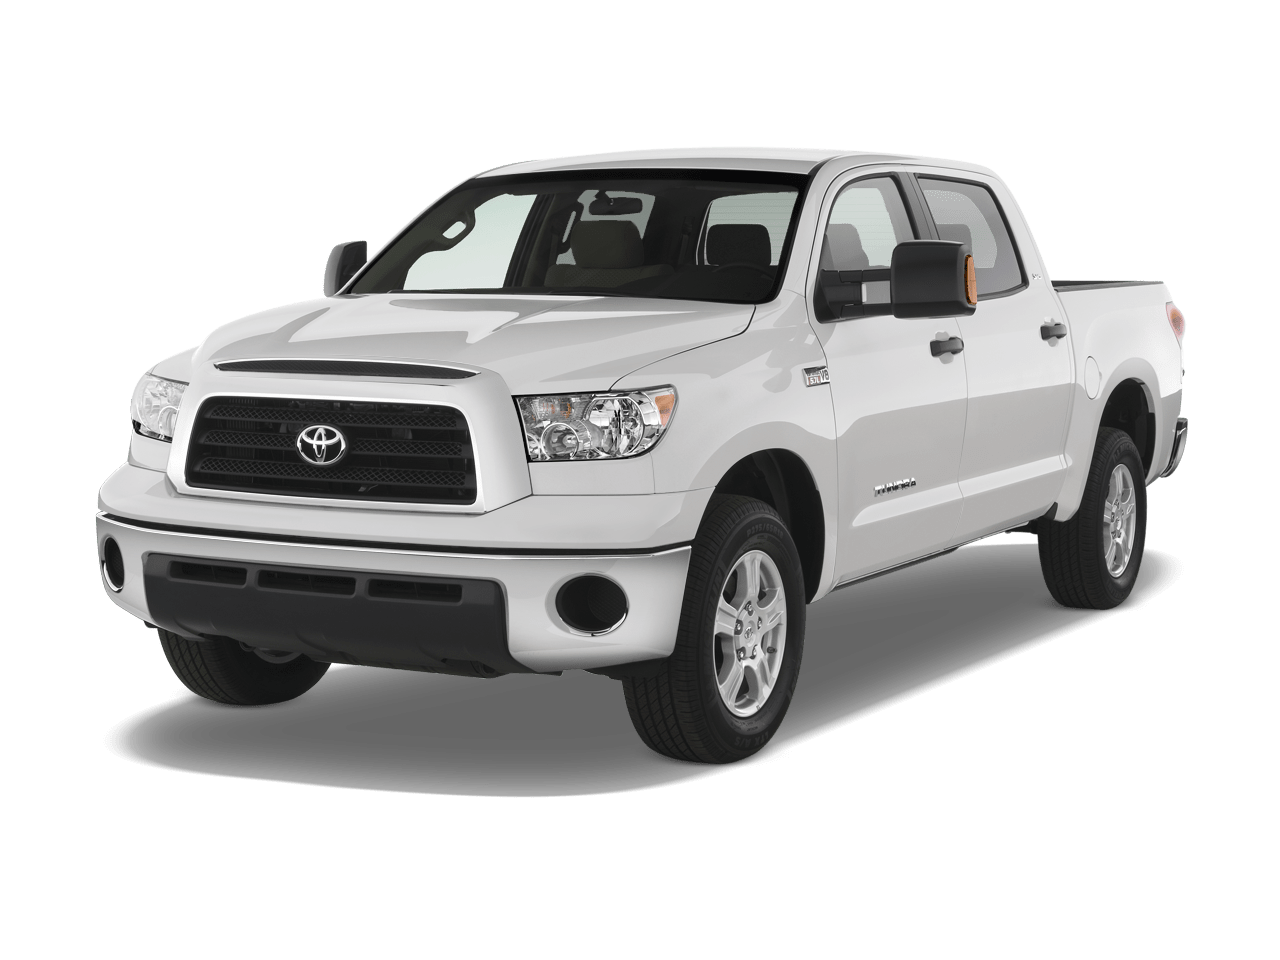 hight resolution of 2007 toyota tundra reviews research tundra prices specs motortrend 2007 toyota tundra receiver wiring